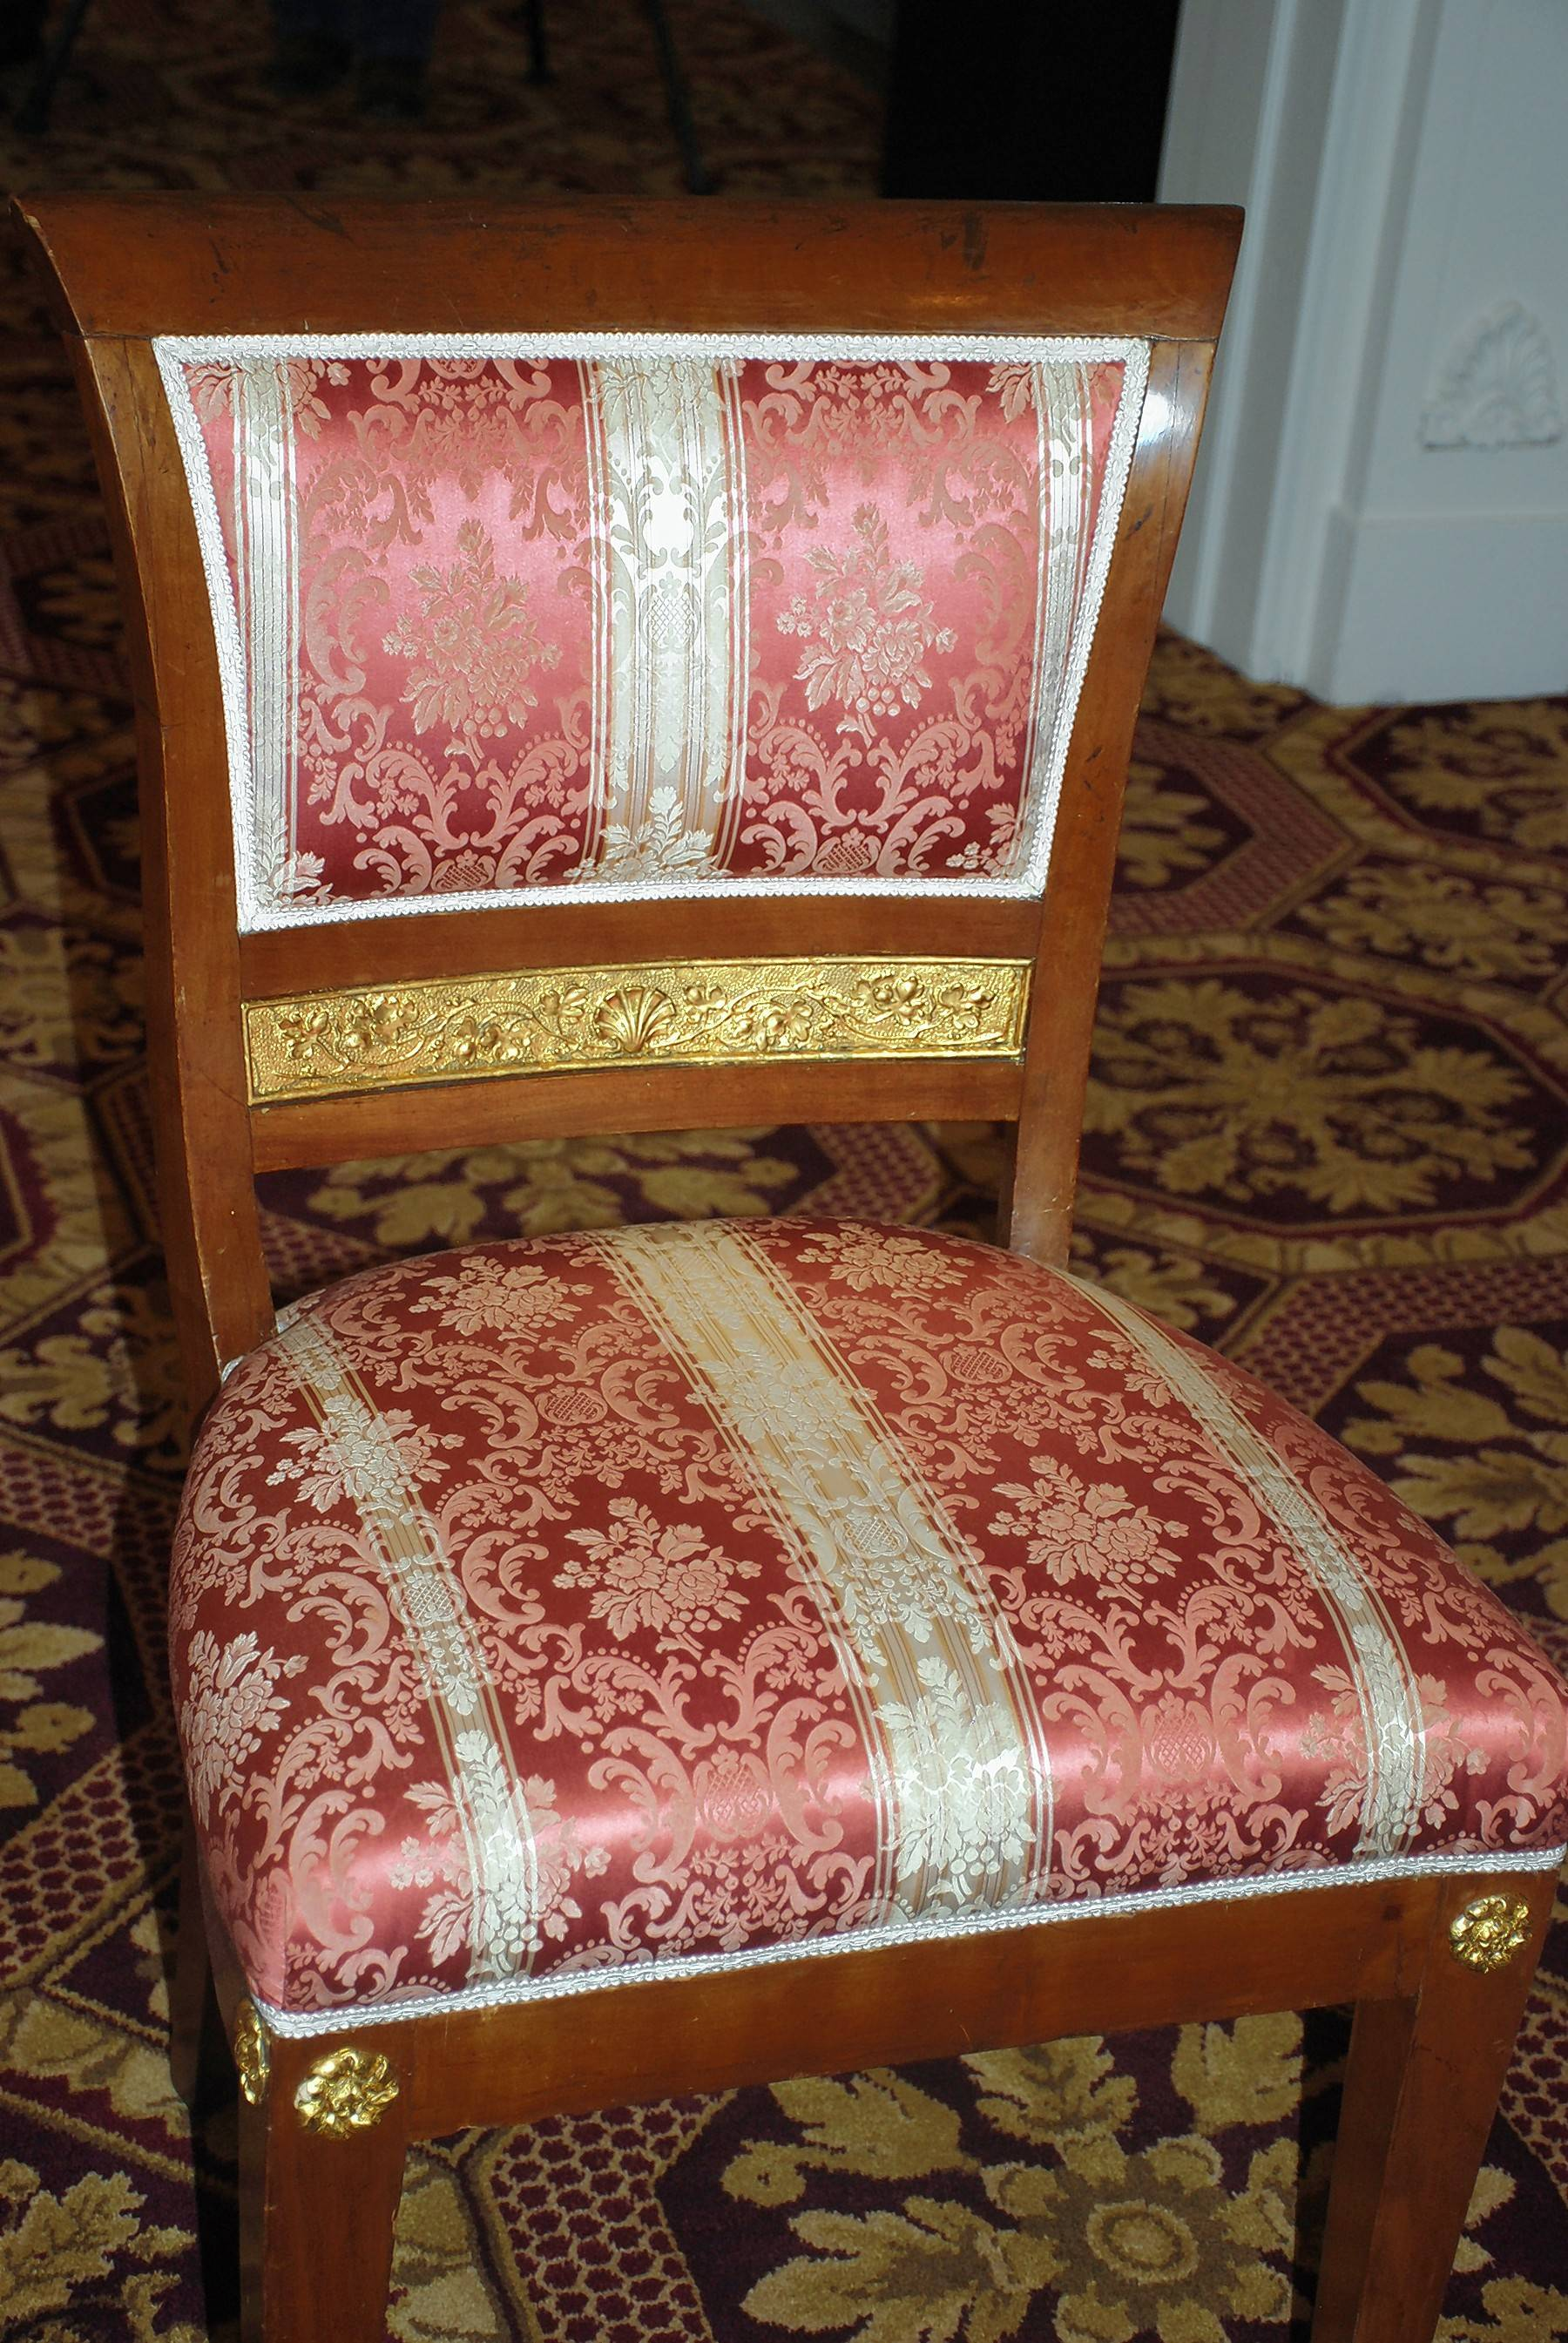 An example of the antique chairs found around the mansion that have been refinished and reupholstered for active use into the future.